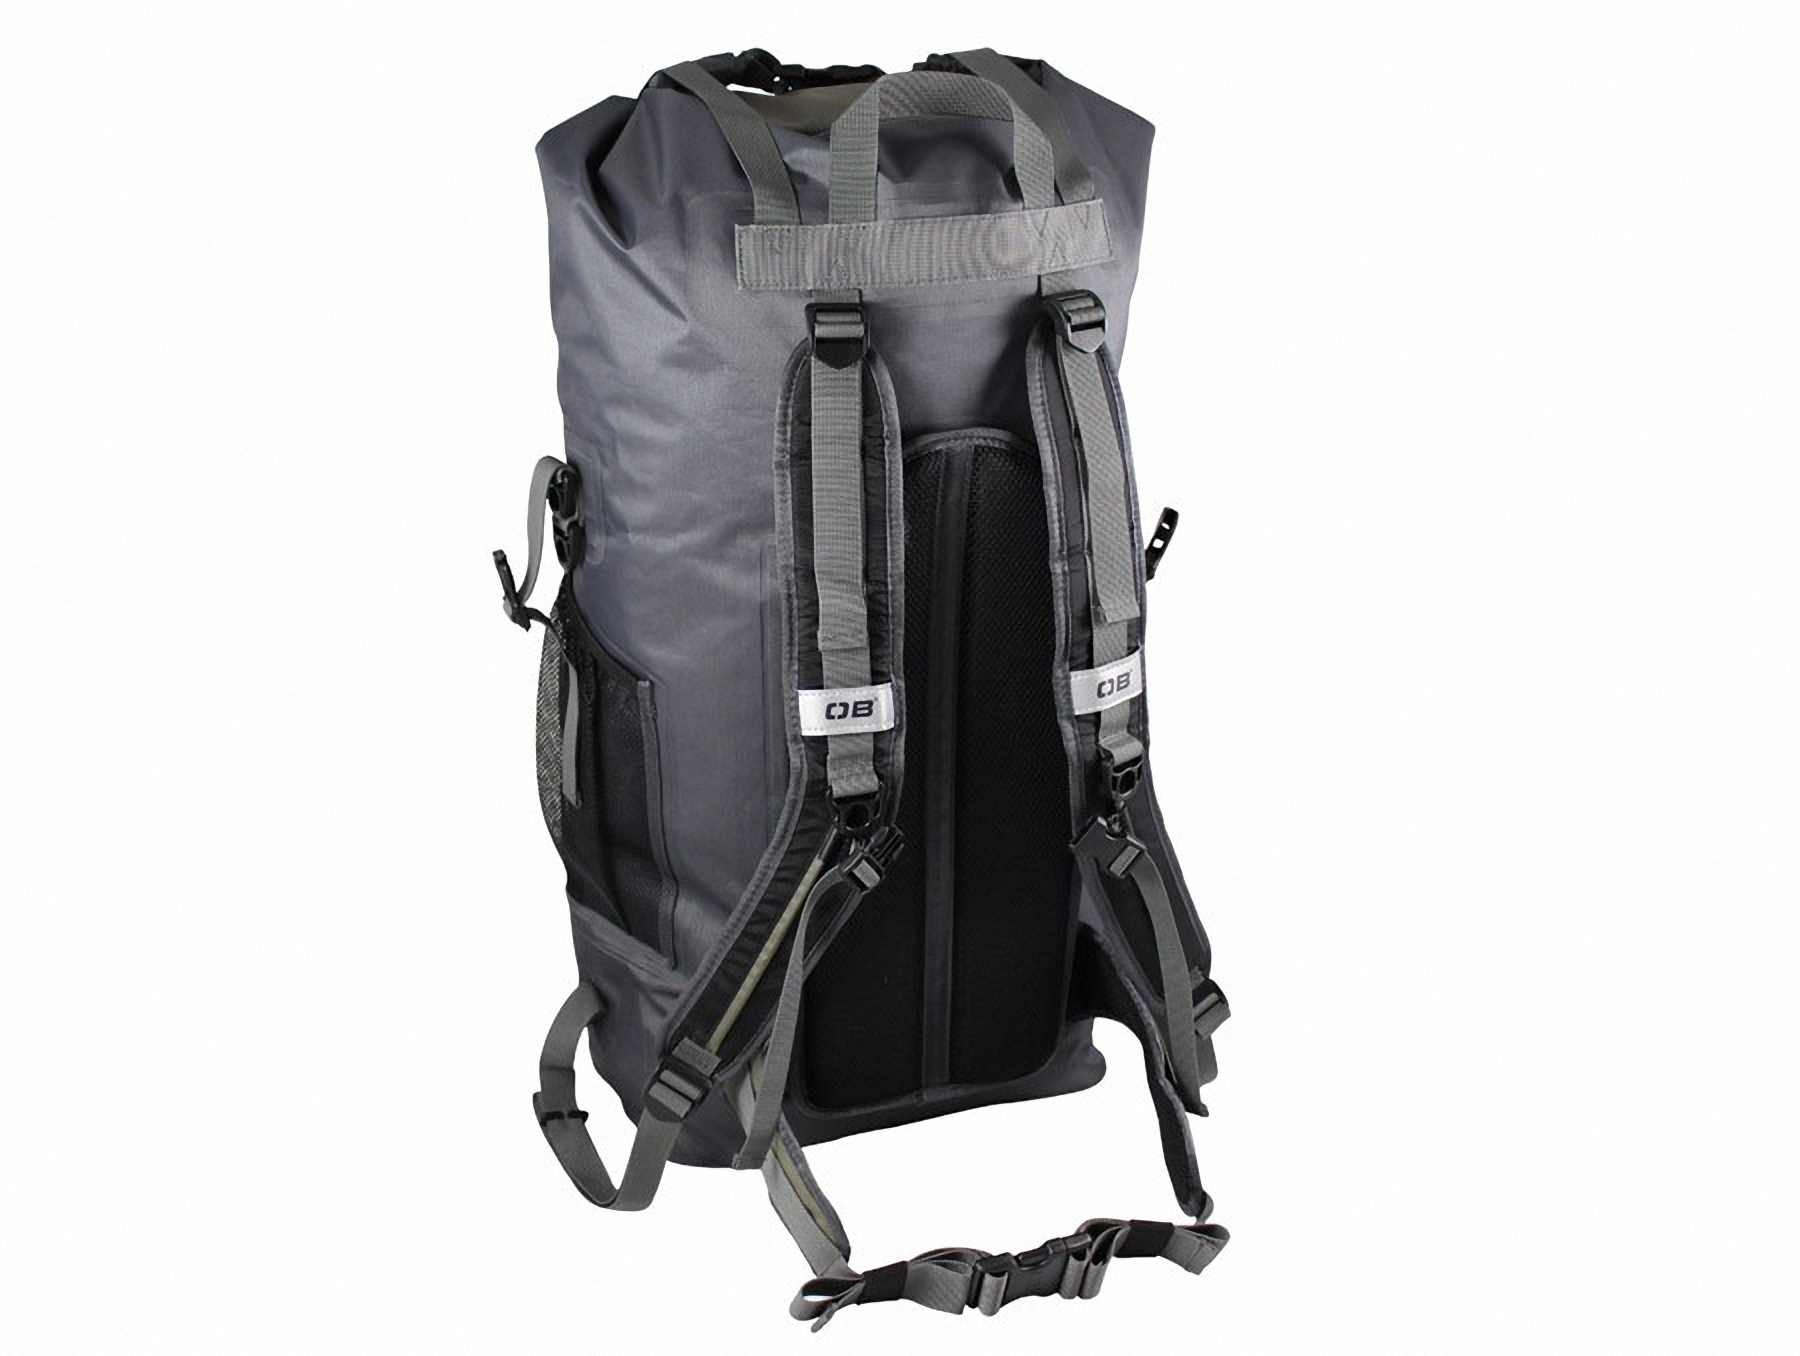 Водонепроницаемый рюкзак OverBoard OB1119G - Ultra-light Waterproof Backpack - 50L. Фото 8